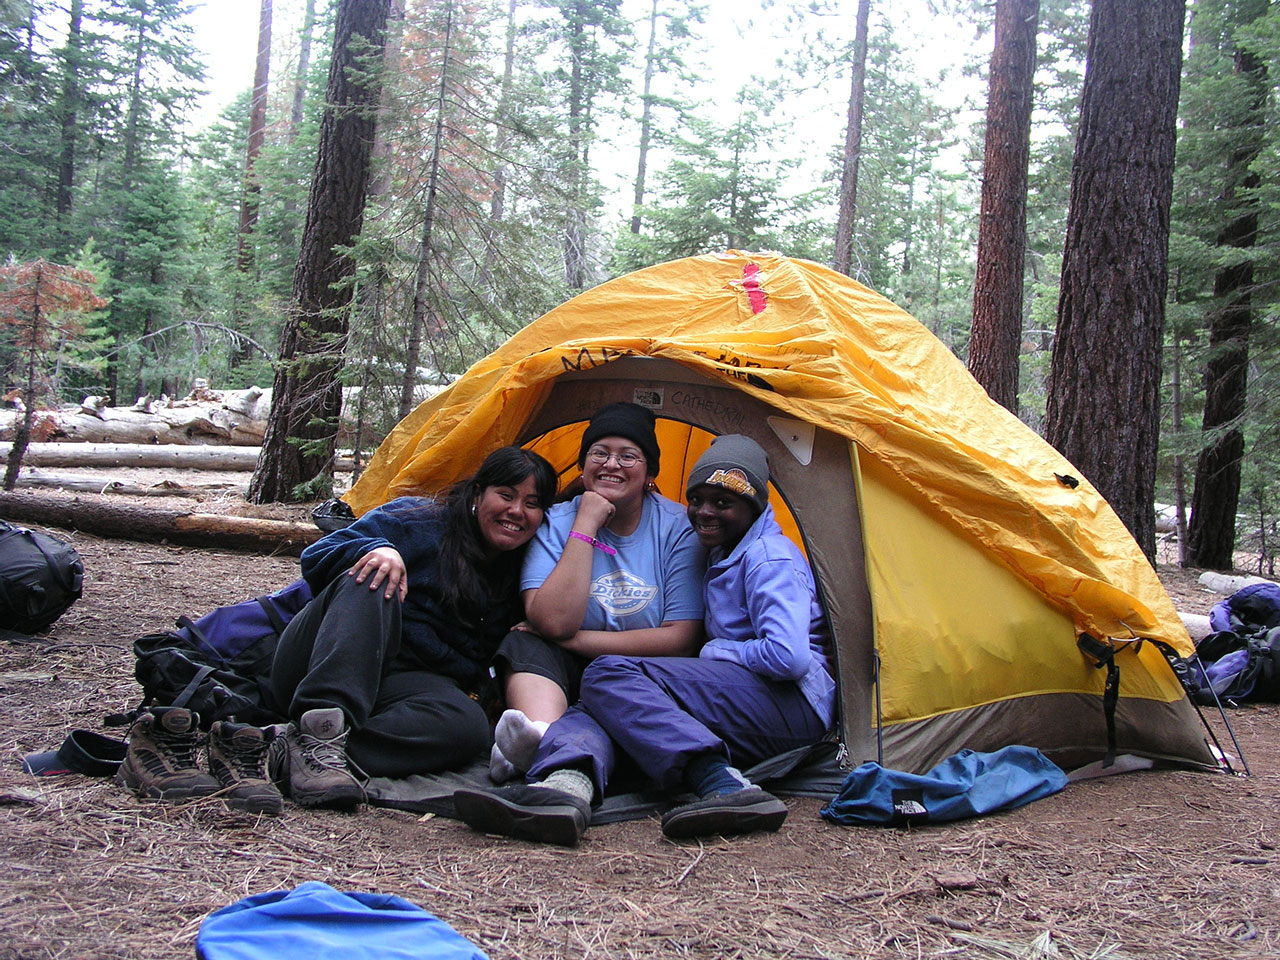 Three girls sitting in a tent